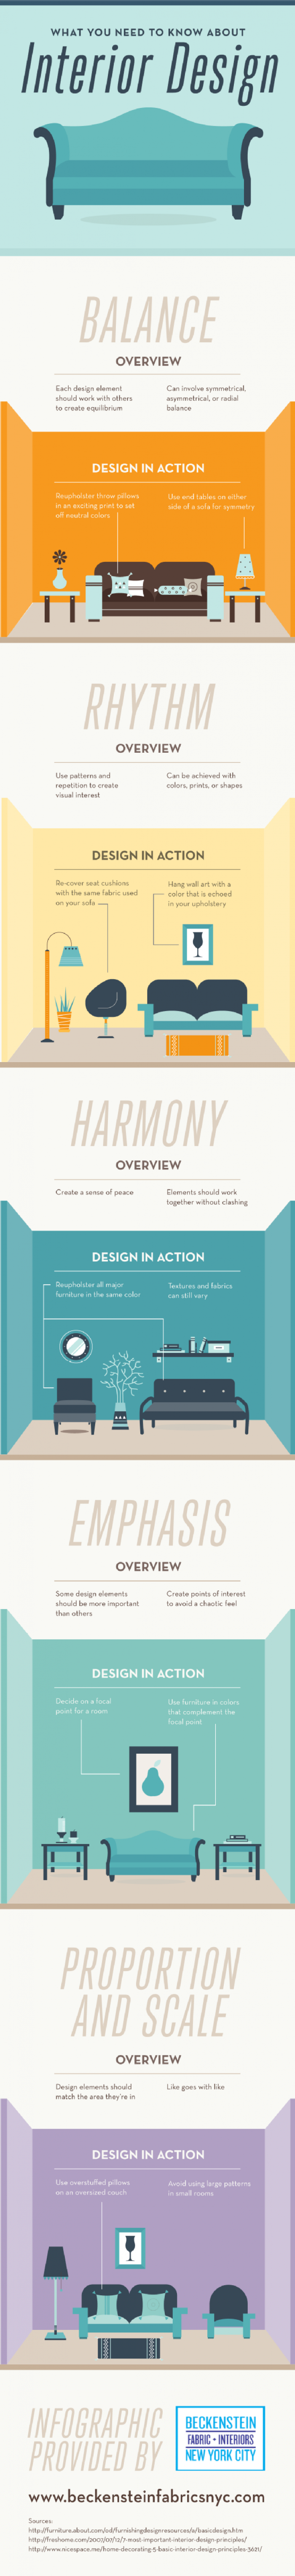 What You Need to Know about Interior Design